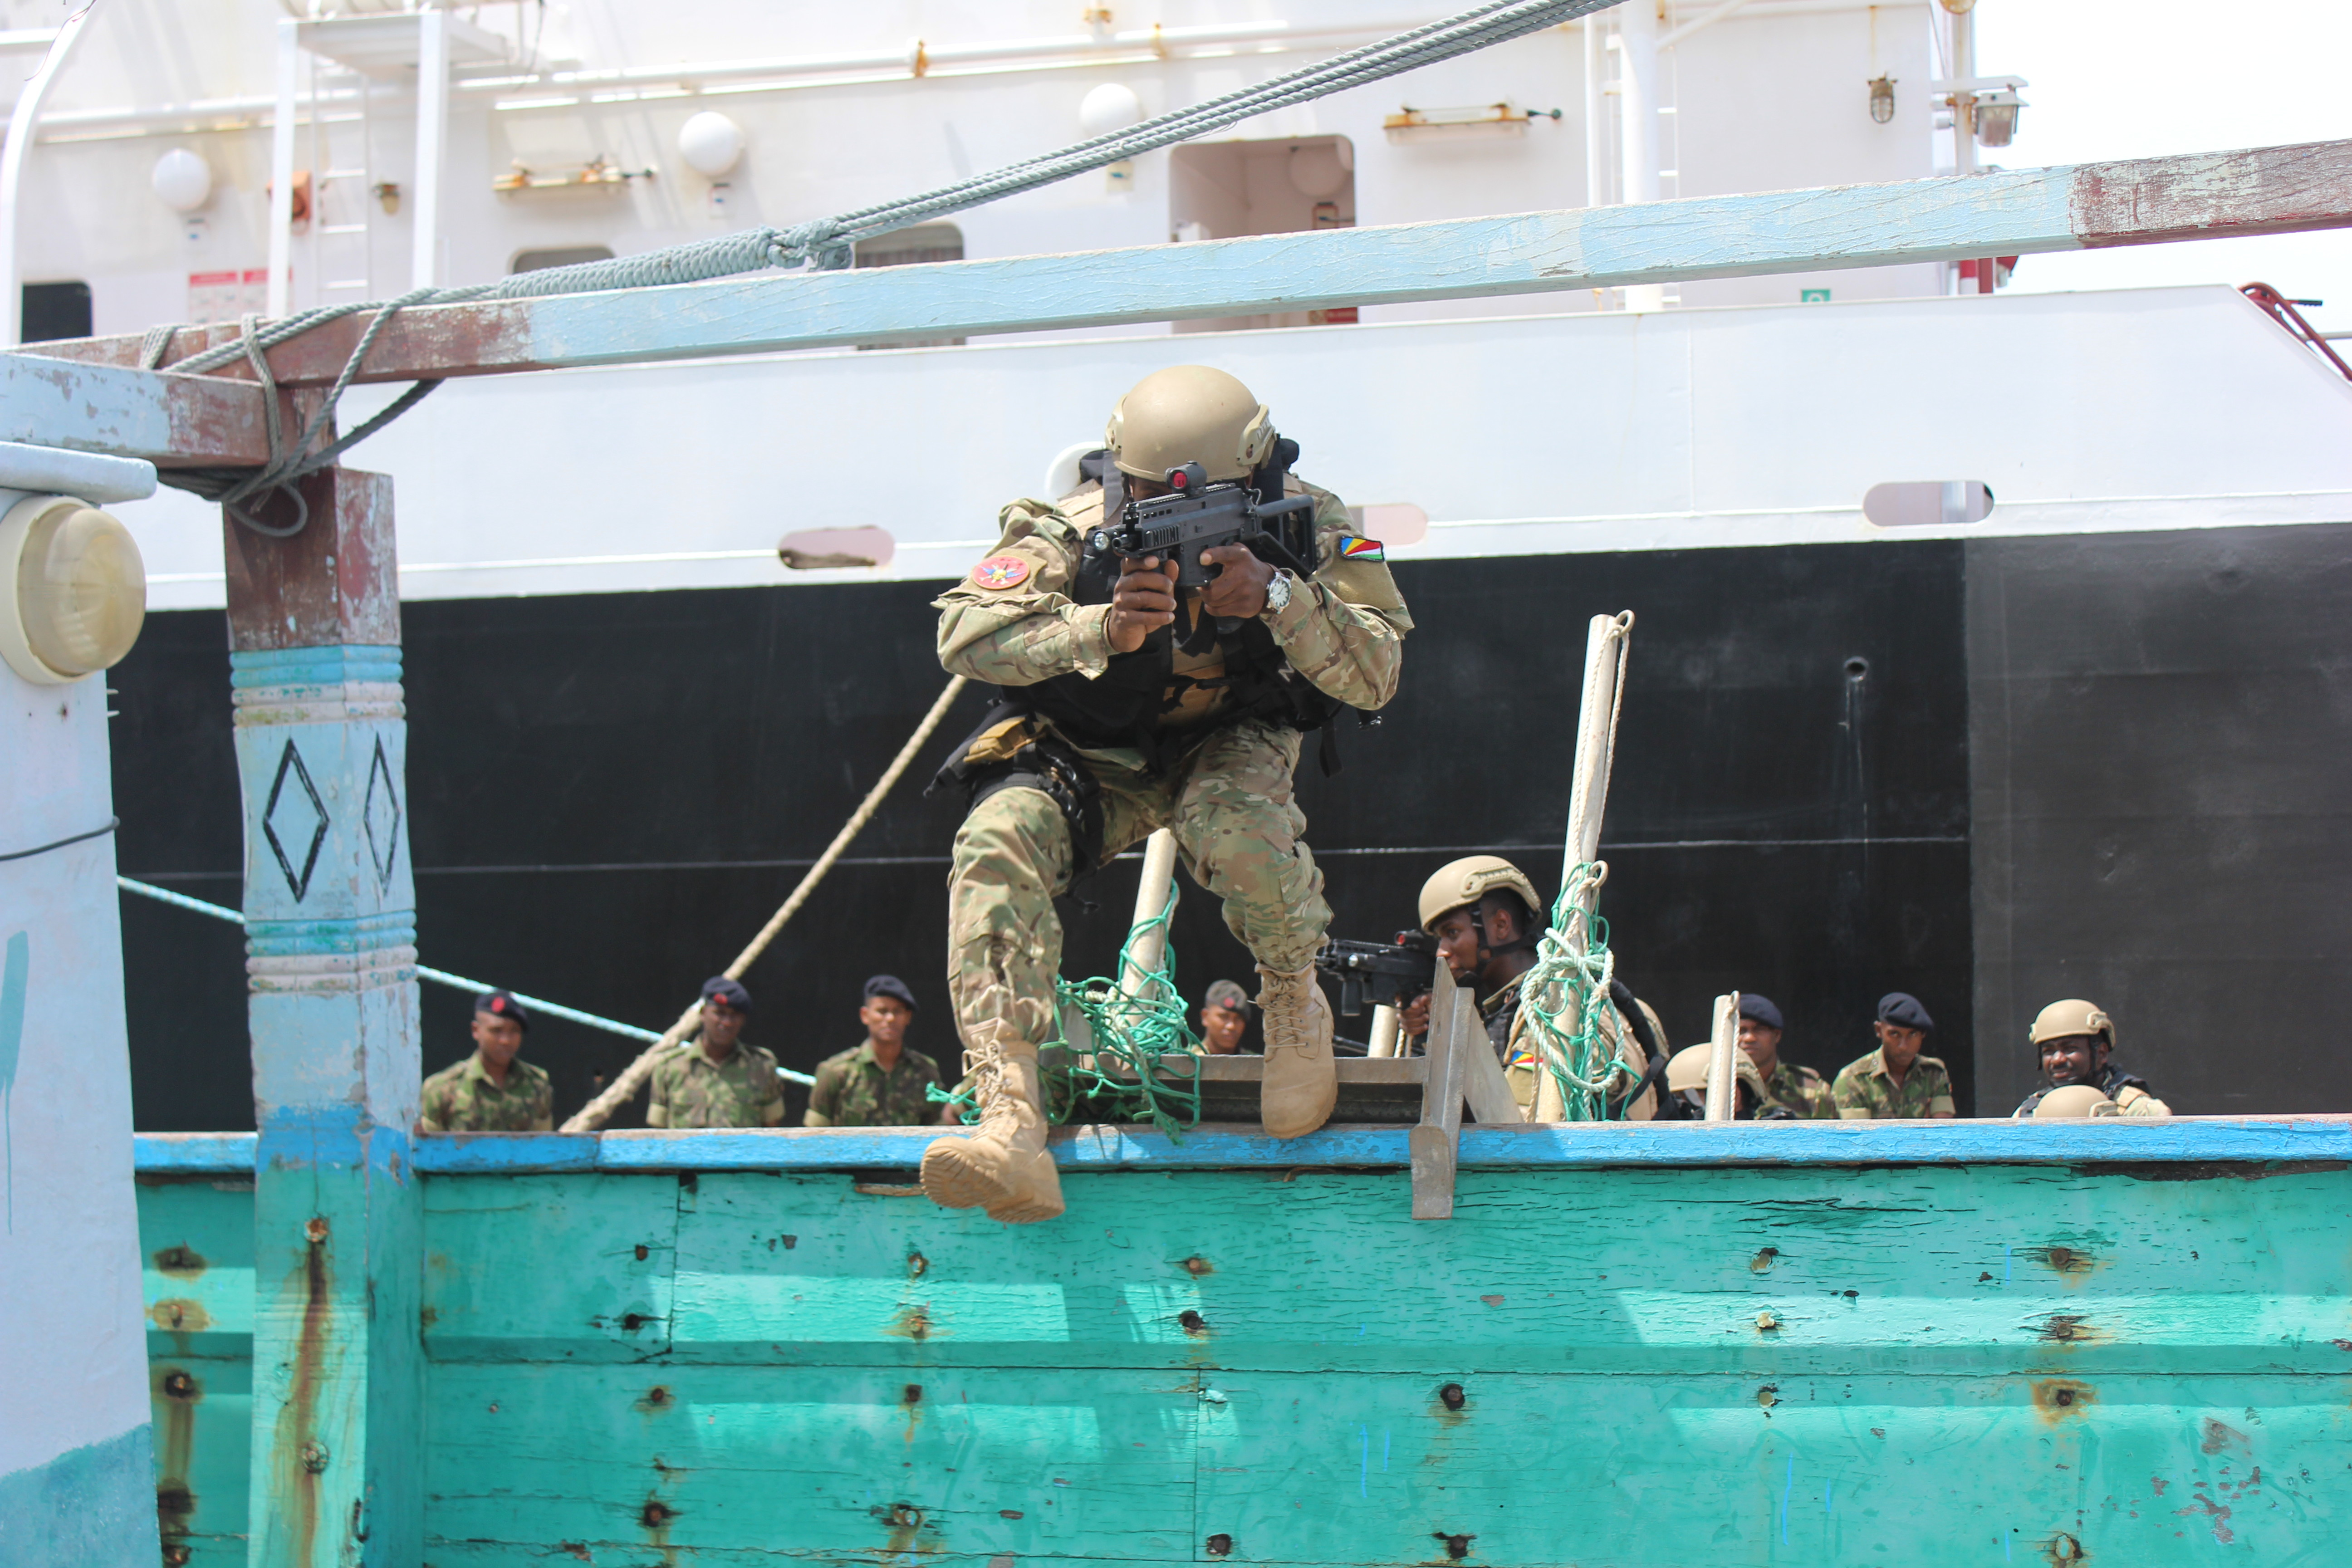 Seychelles Coast Guardsmen simulate boarding a vessel during a subject matter expert exchange with the U.S. Coast Guard as part of Africa Maritime Law Enforcement Program while in Victoria, Seychelles, Sept. 24, 2019. AMPLEP is a U.S. Naval Forces Africa-facilitated initiative that aims to enhance the maritime law enforcement capabilities of African partners in order to improve management and security of the maritime domain.